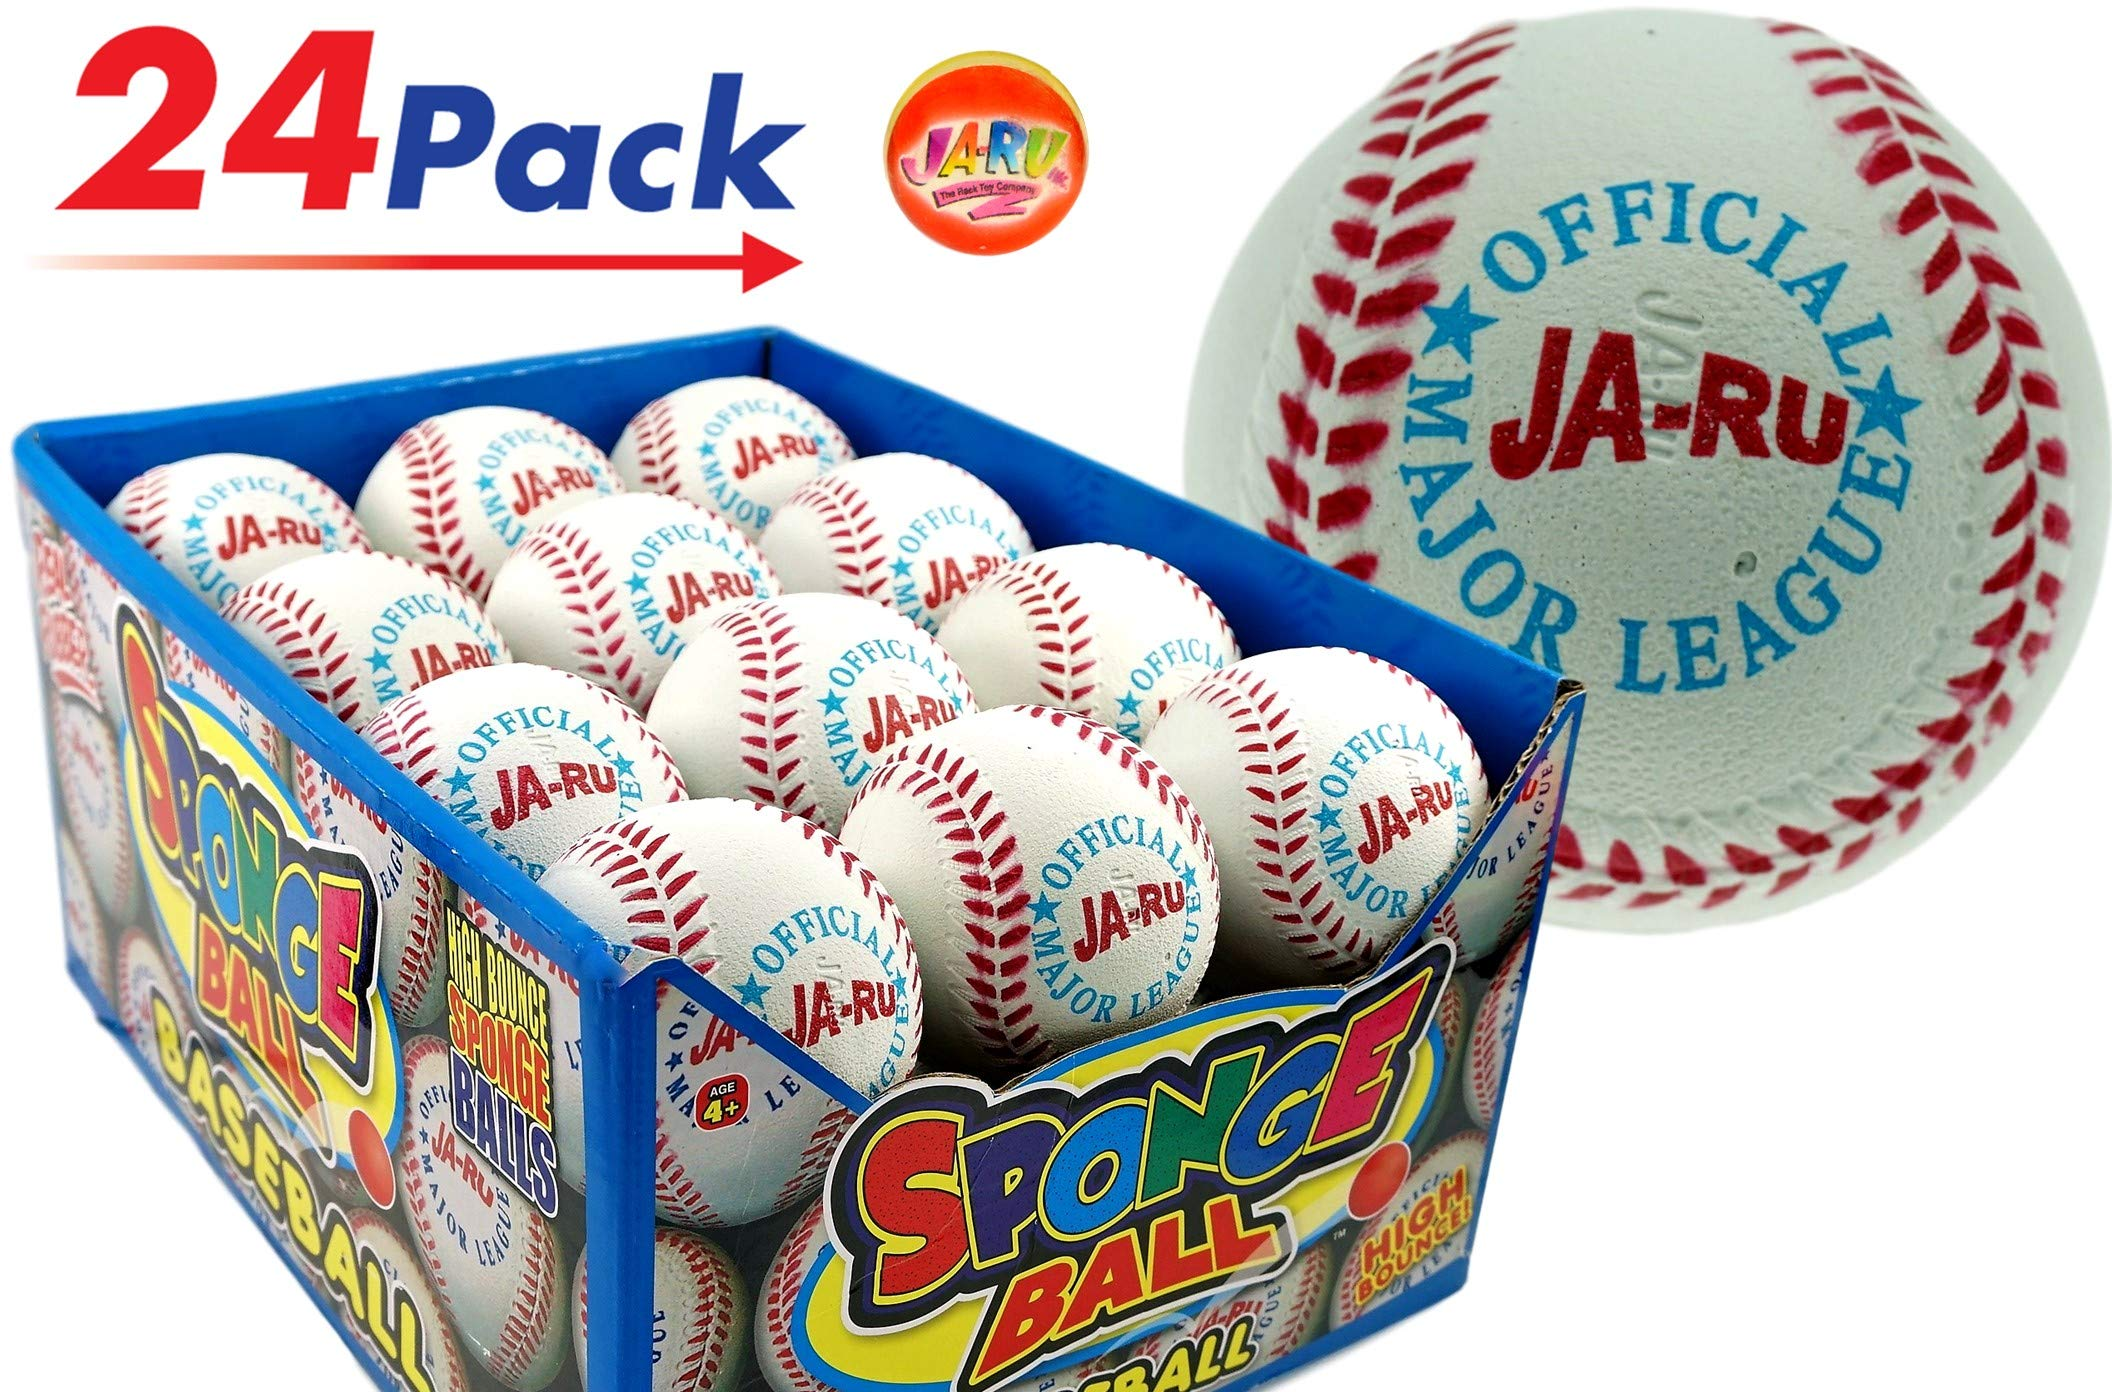 Rubber Bouncy Ball Baseball Style (Pack of 24) by JA-RU 2.5'' Hi Bounce Same Like Pinky Balls for Play or Massage Therapy. Plus 1 Small Ball. #987-24p by JaRu